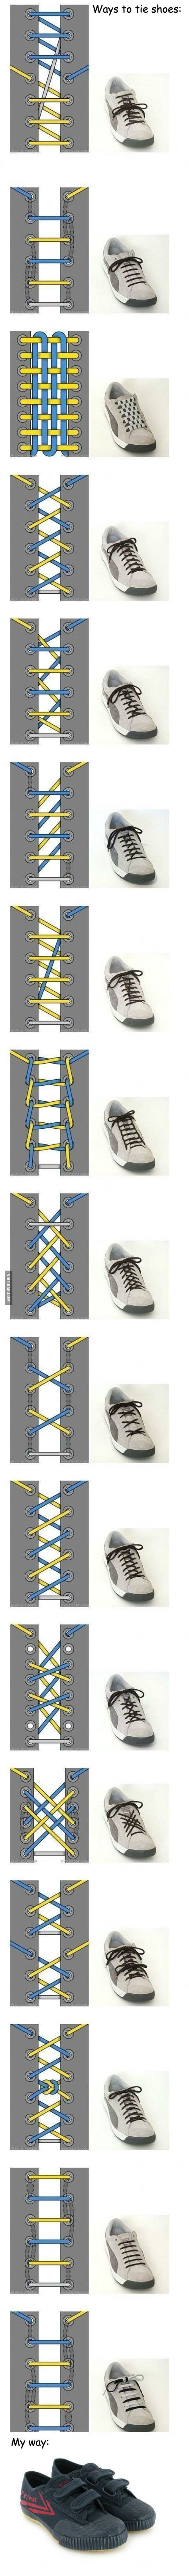 Different Ways To Tie Shoes